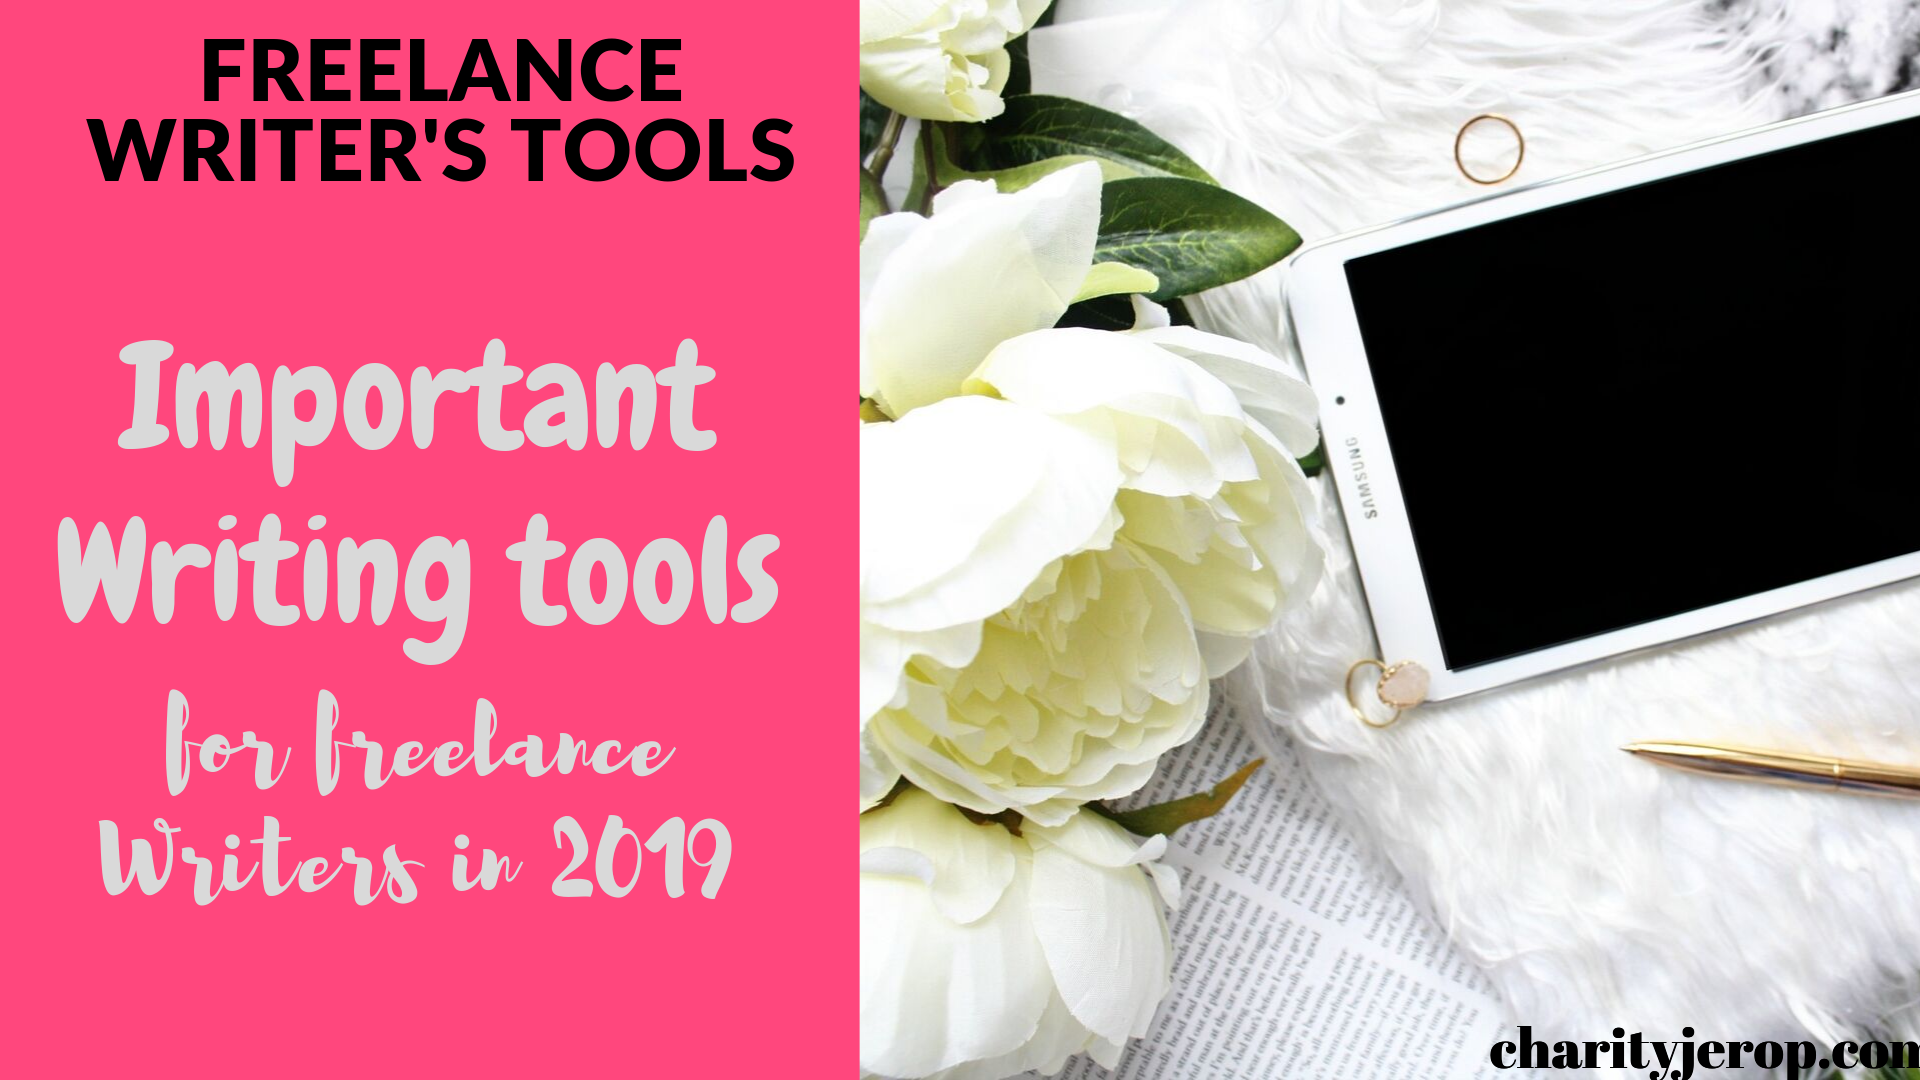 Must-have writing tools for freelance writers.